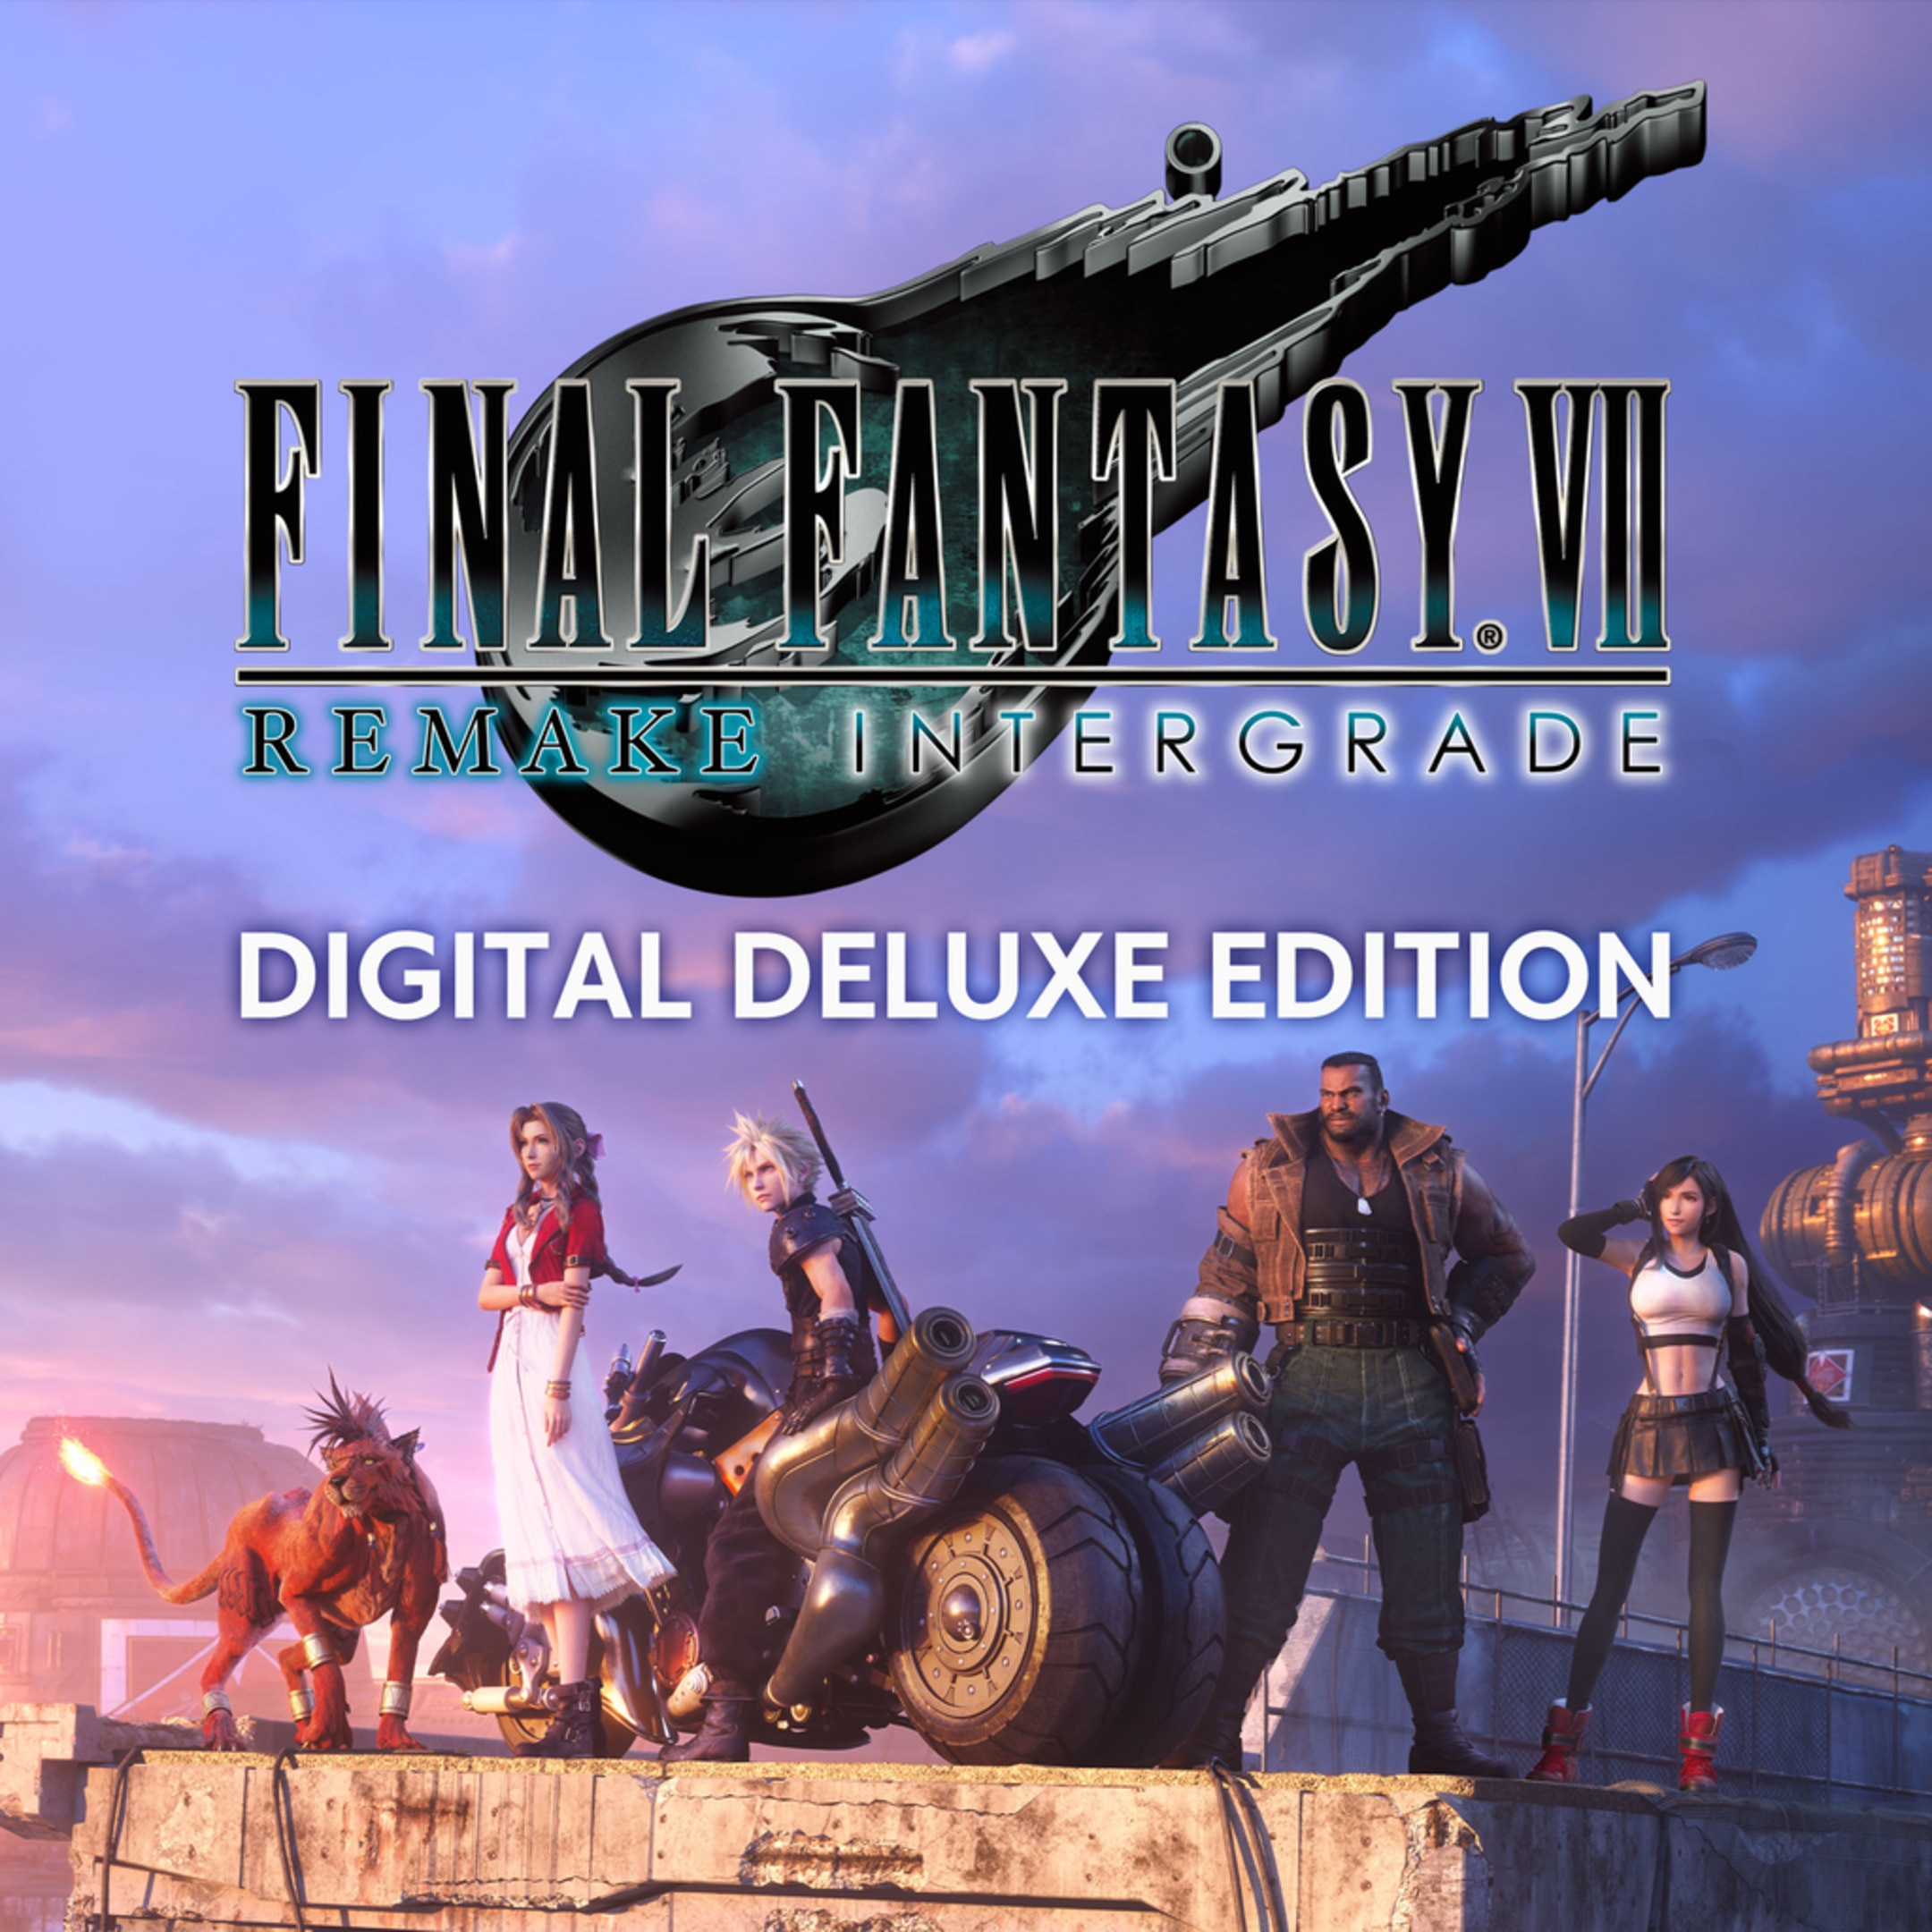 FINAL FANTASY VII REMAKE INTERGRADE Digital Deluxe Edition